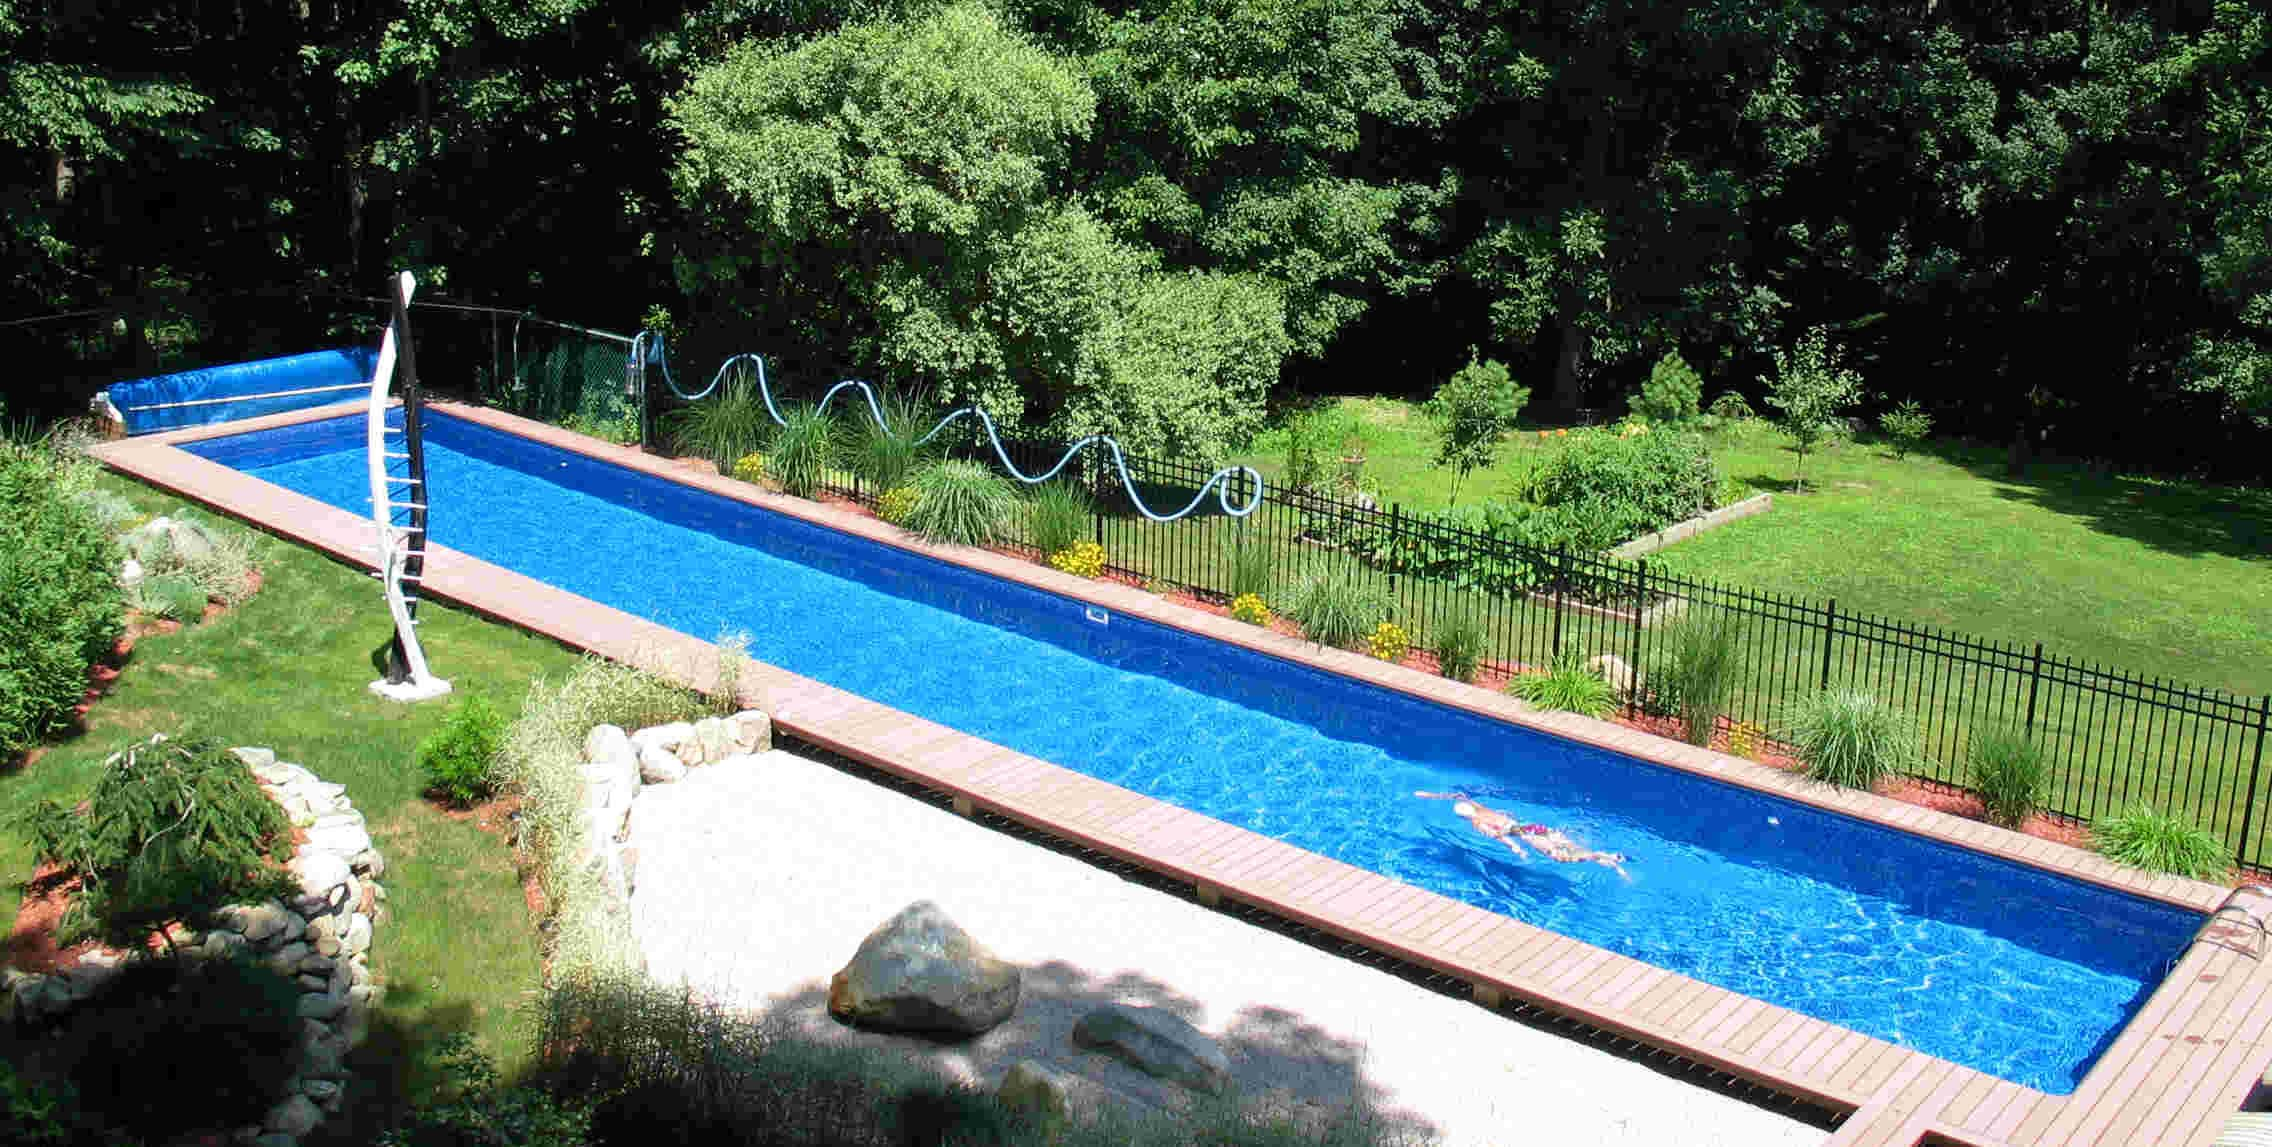 Diy inground swimming pool backyard design ideas for Simple inground pool designs